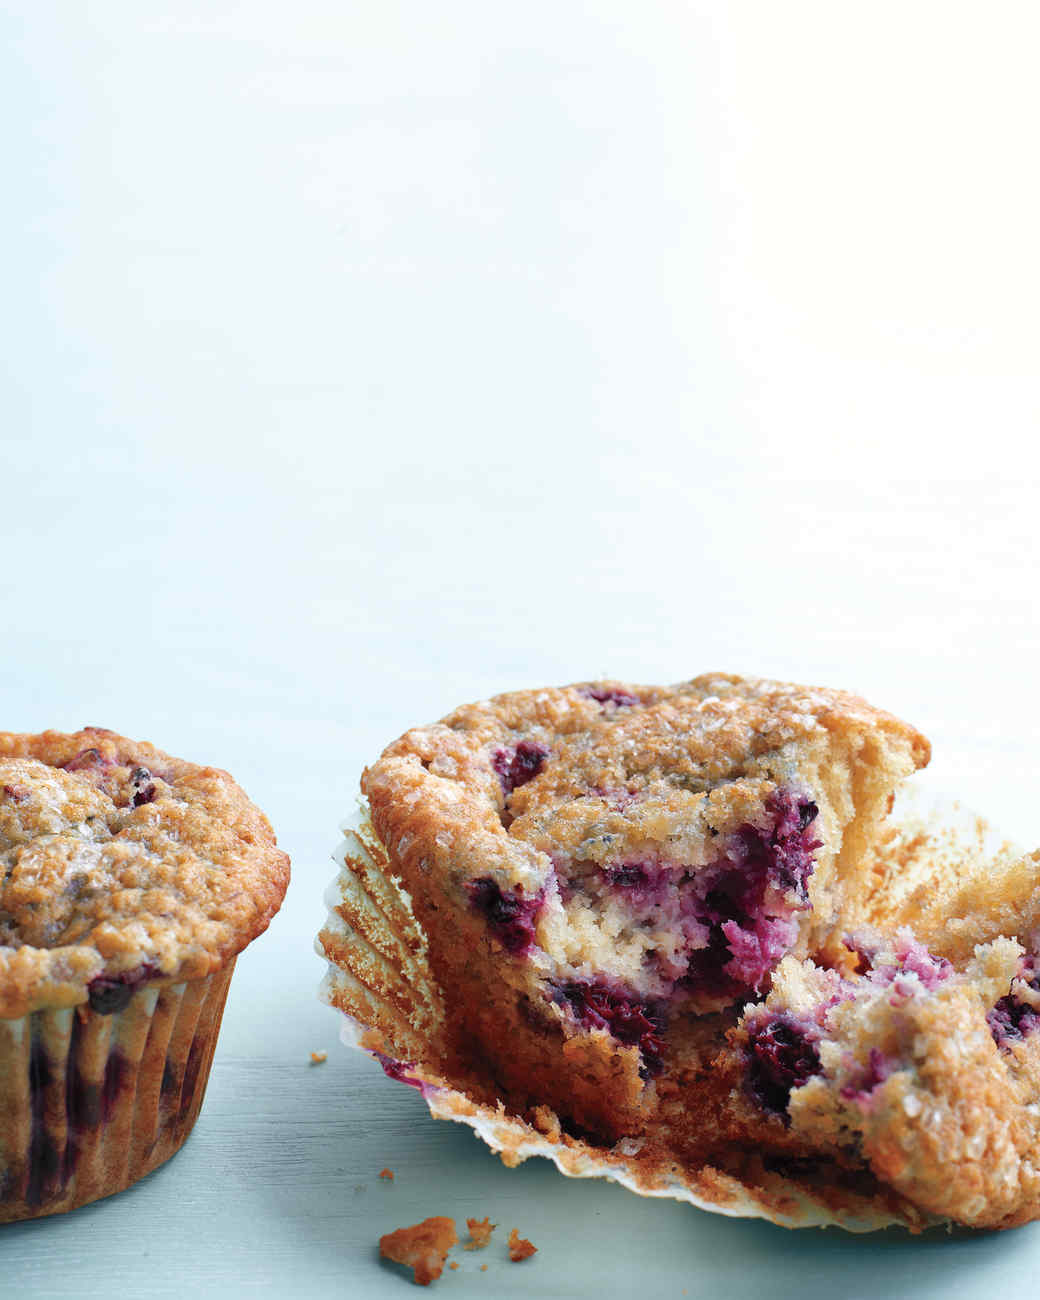 Marvelous Muffin Recipes for Breakfast, Brunch, or Anytime | Martha ...